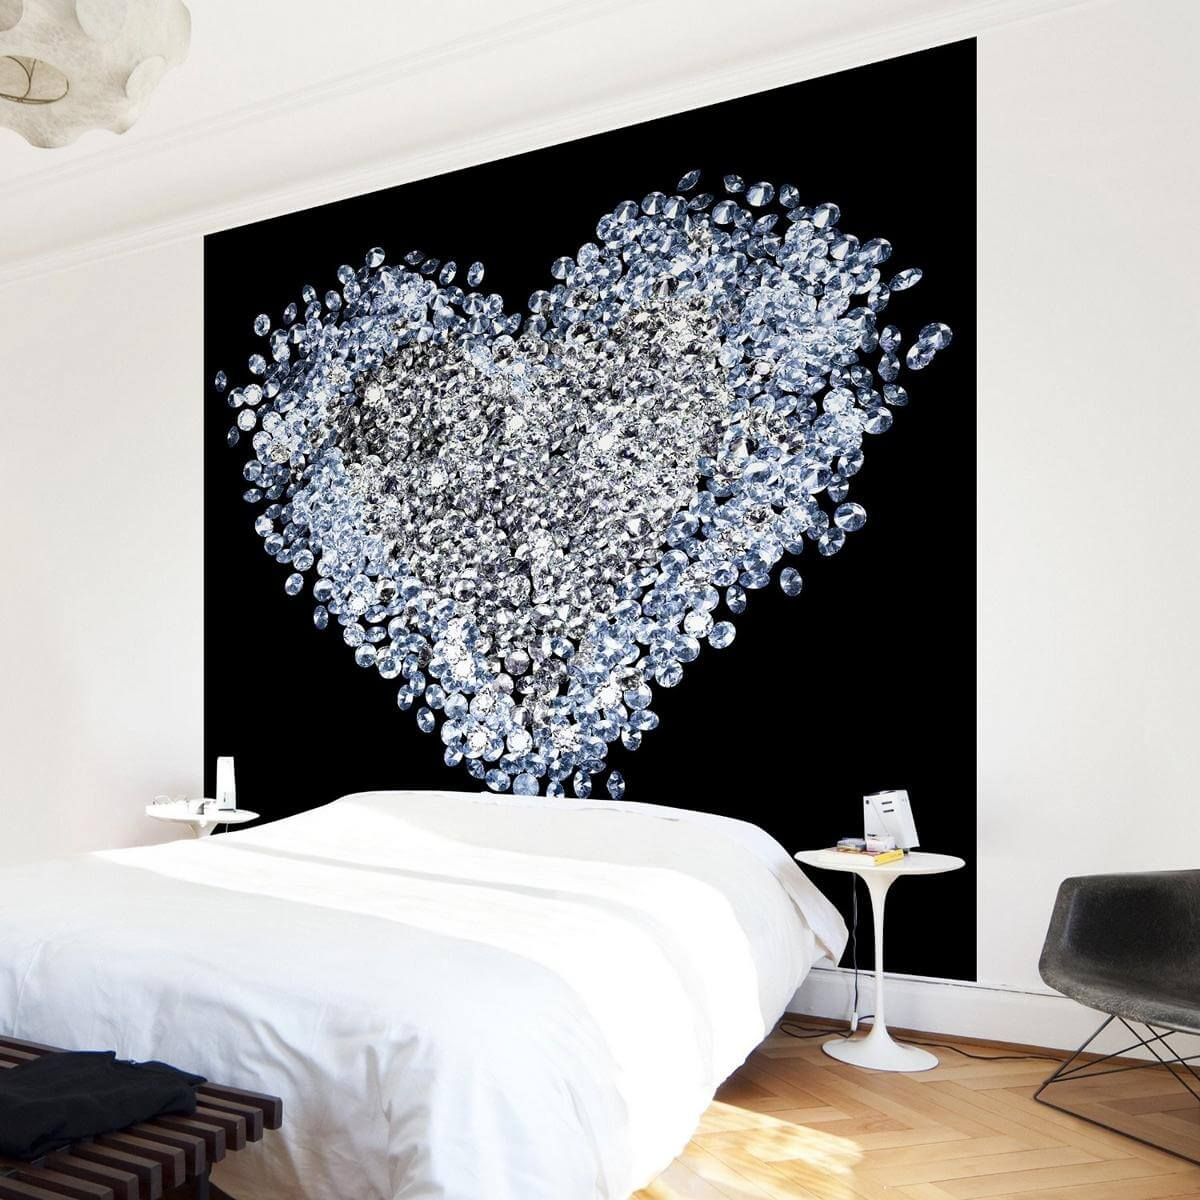 vlies fototapete herz aus diamanten mit wow effekt. Black Bedroom Furniture Sets. Home Design Ideas